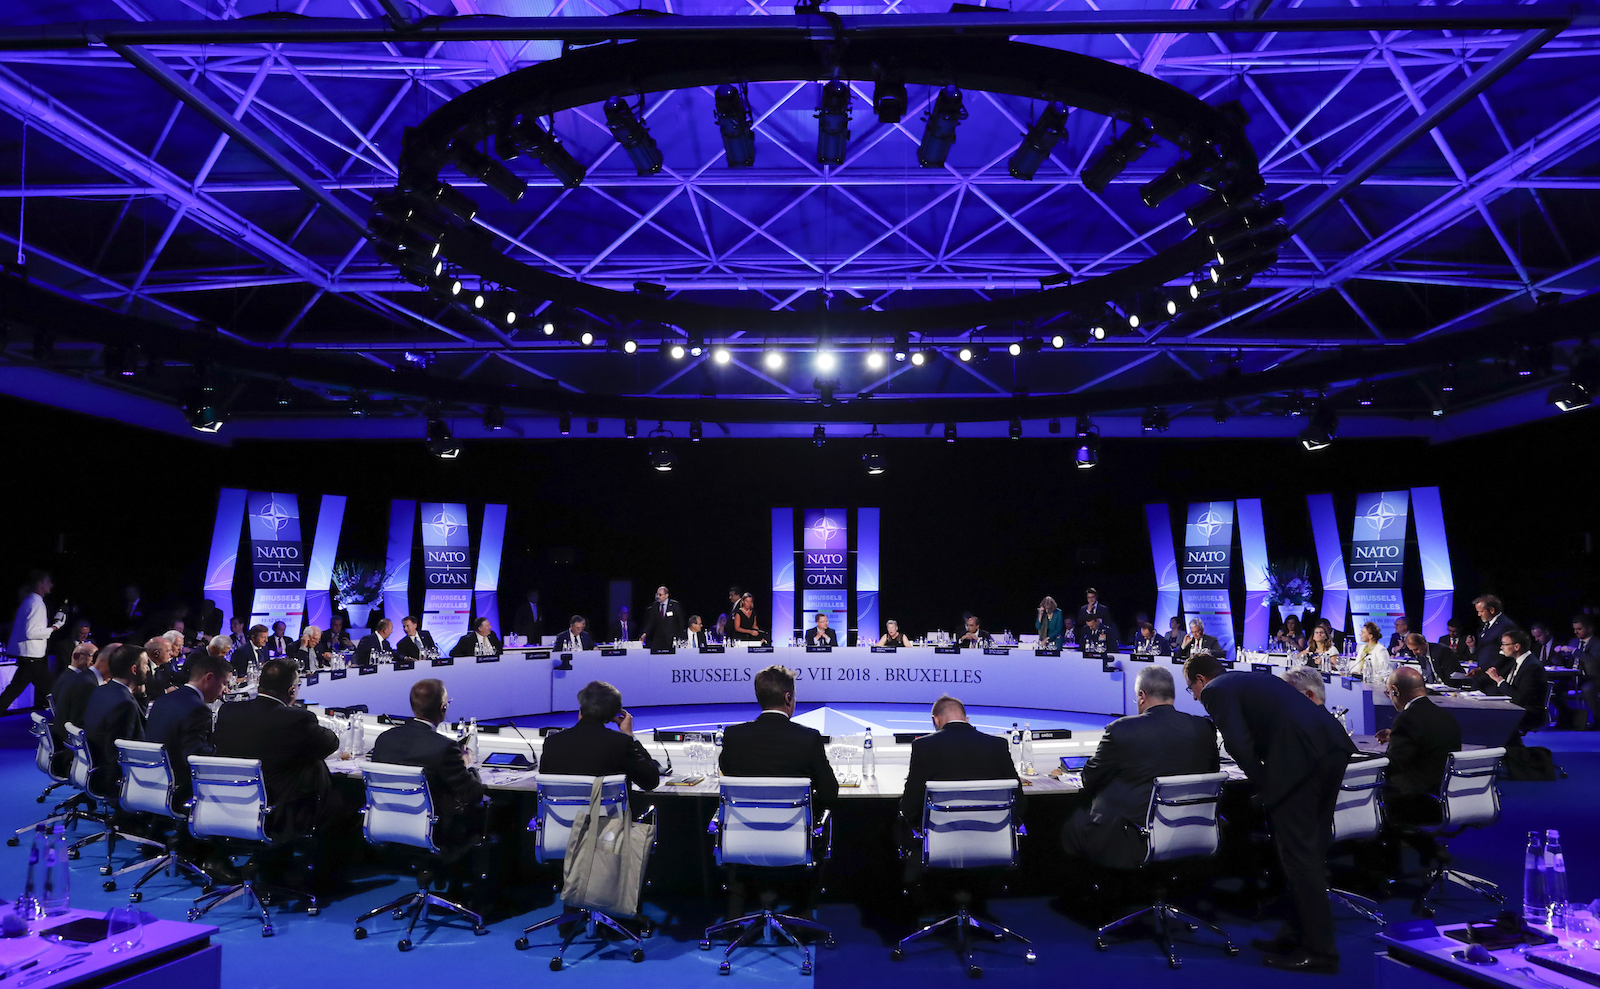 Foreign ministers attend a working dinner during the NATO Summit in Brussels on July 11, 2018. They gathered to discuss Russia, Iraq and their mission in Afghanistan. Photo: AFP/ pool/ Yves Herman